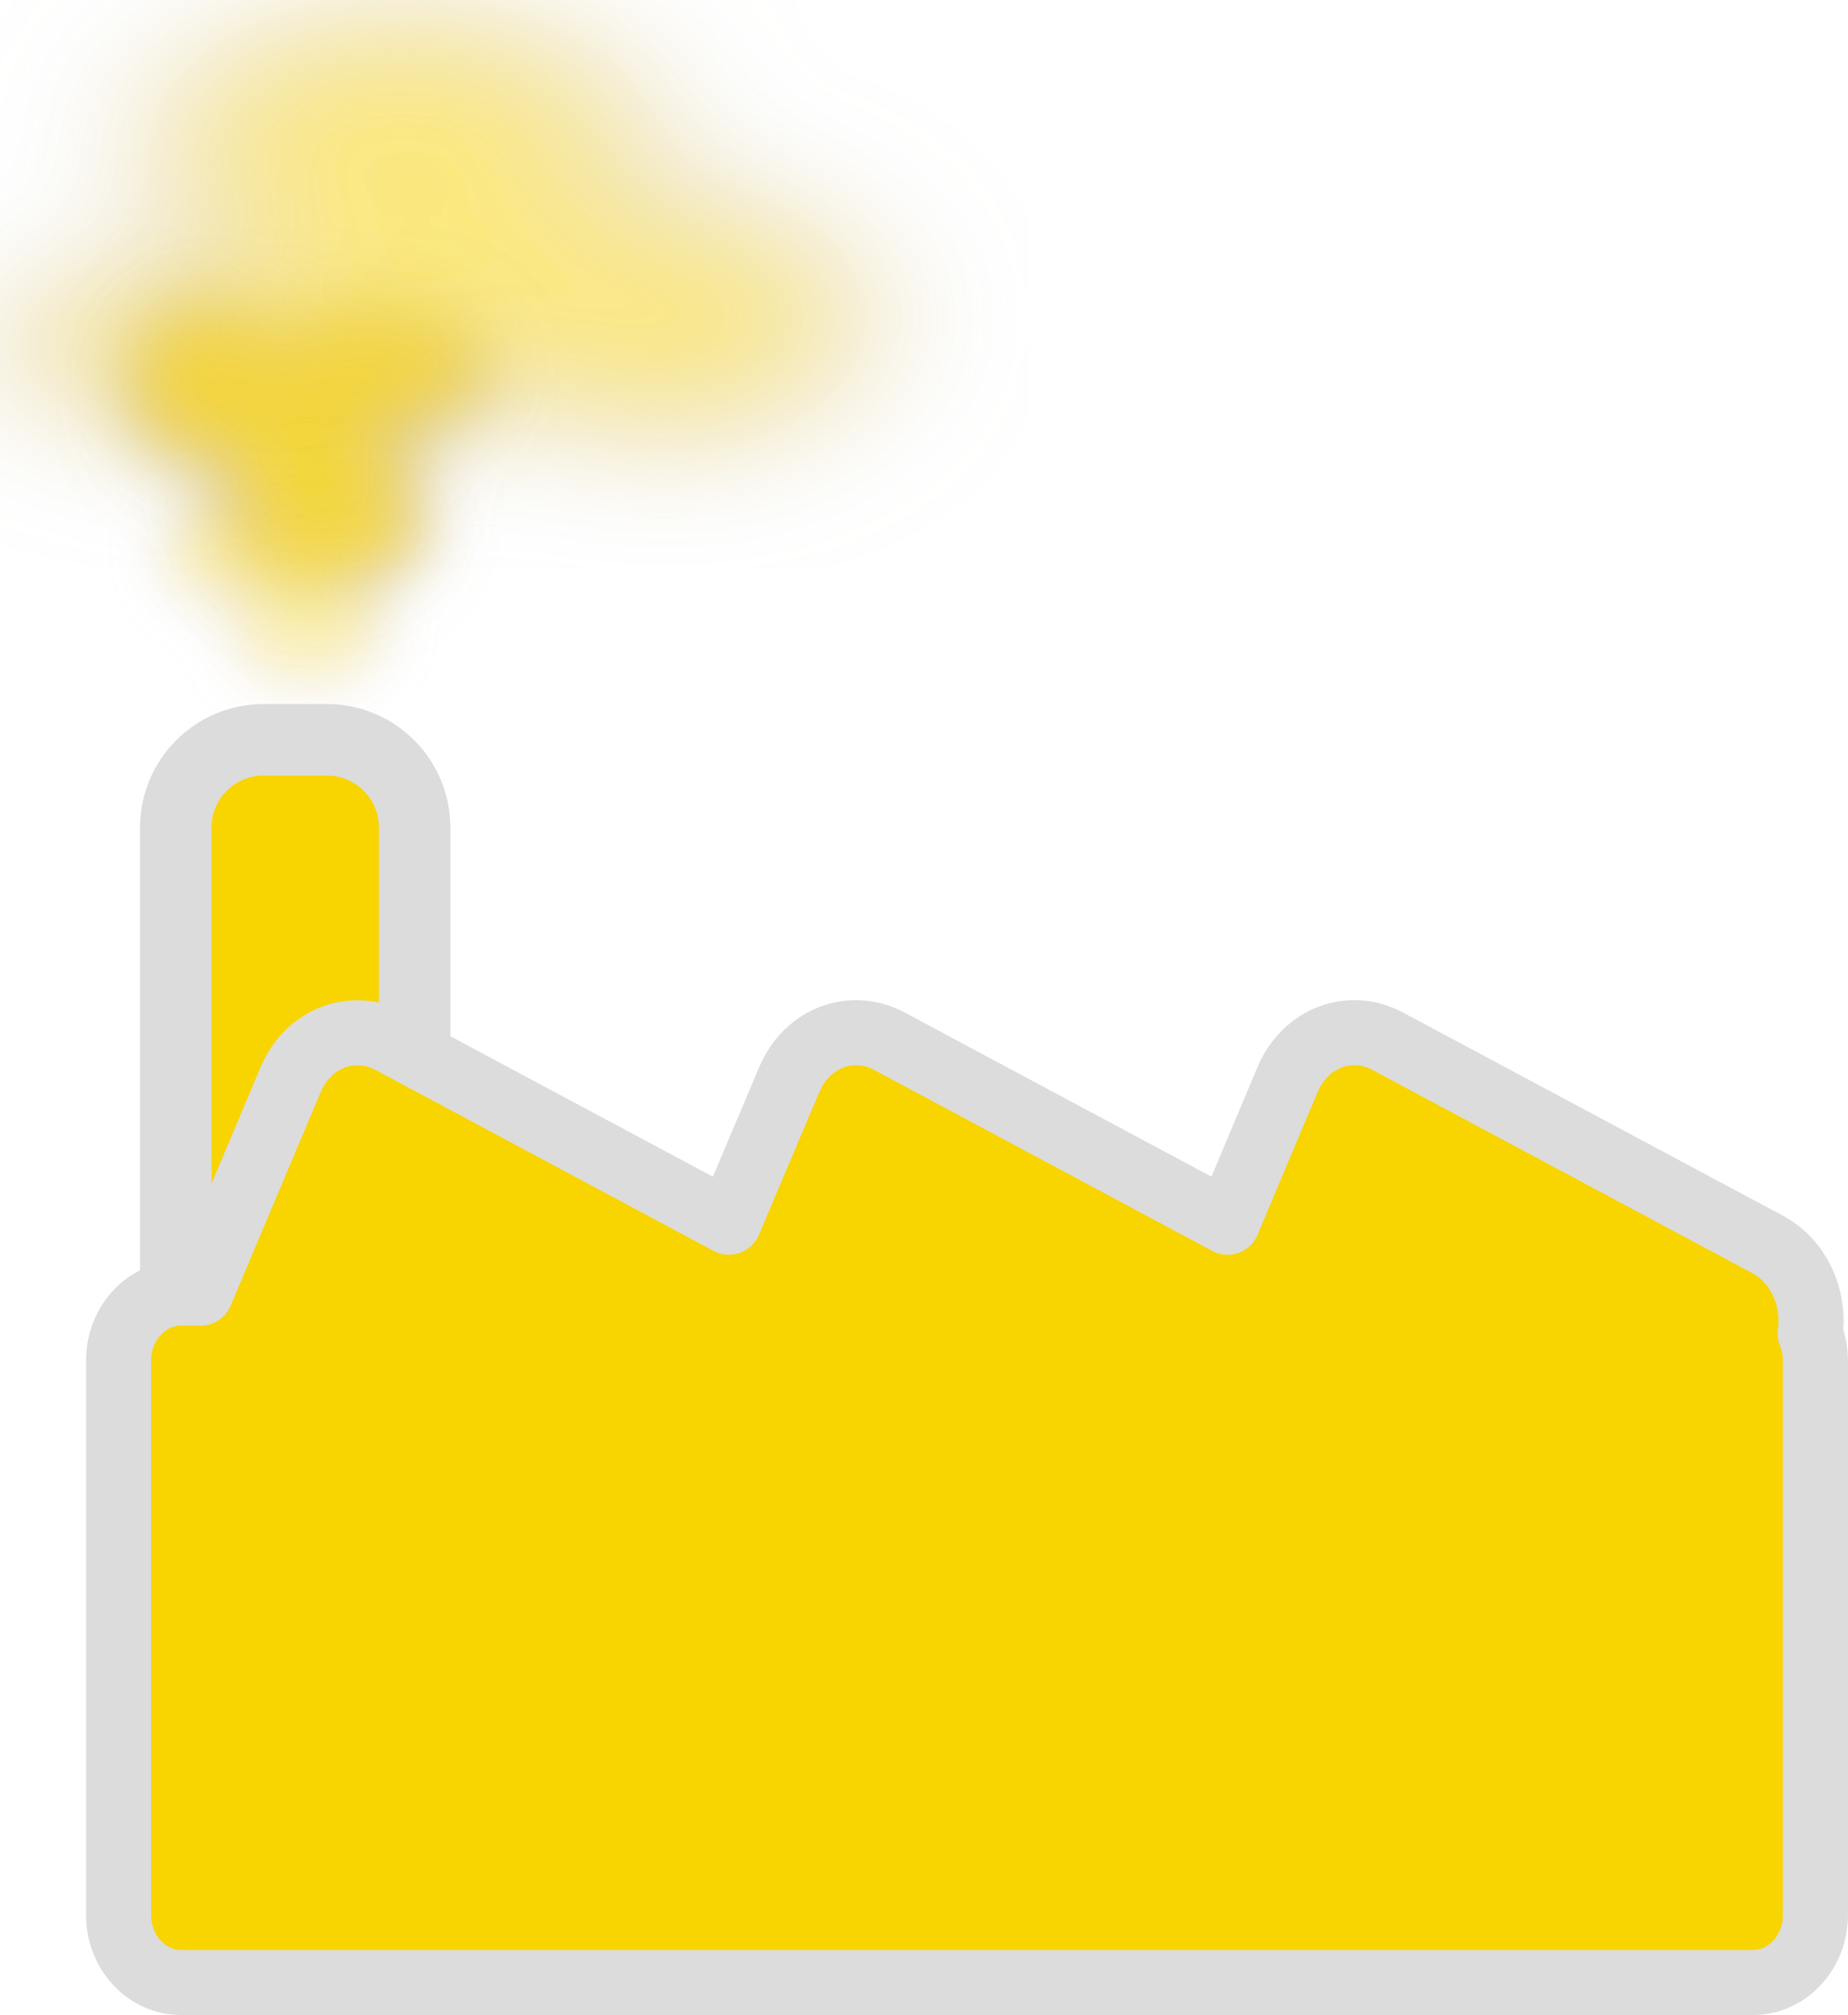 Factory yellow icons png. Factories clipart svg